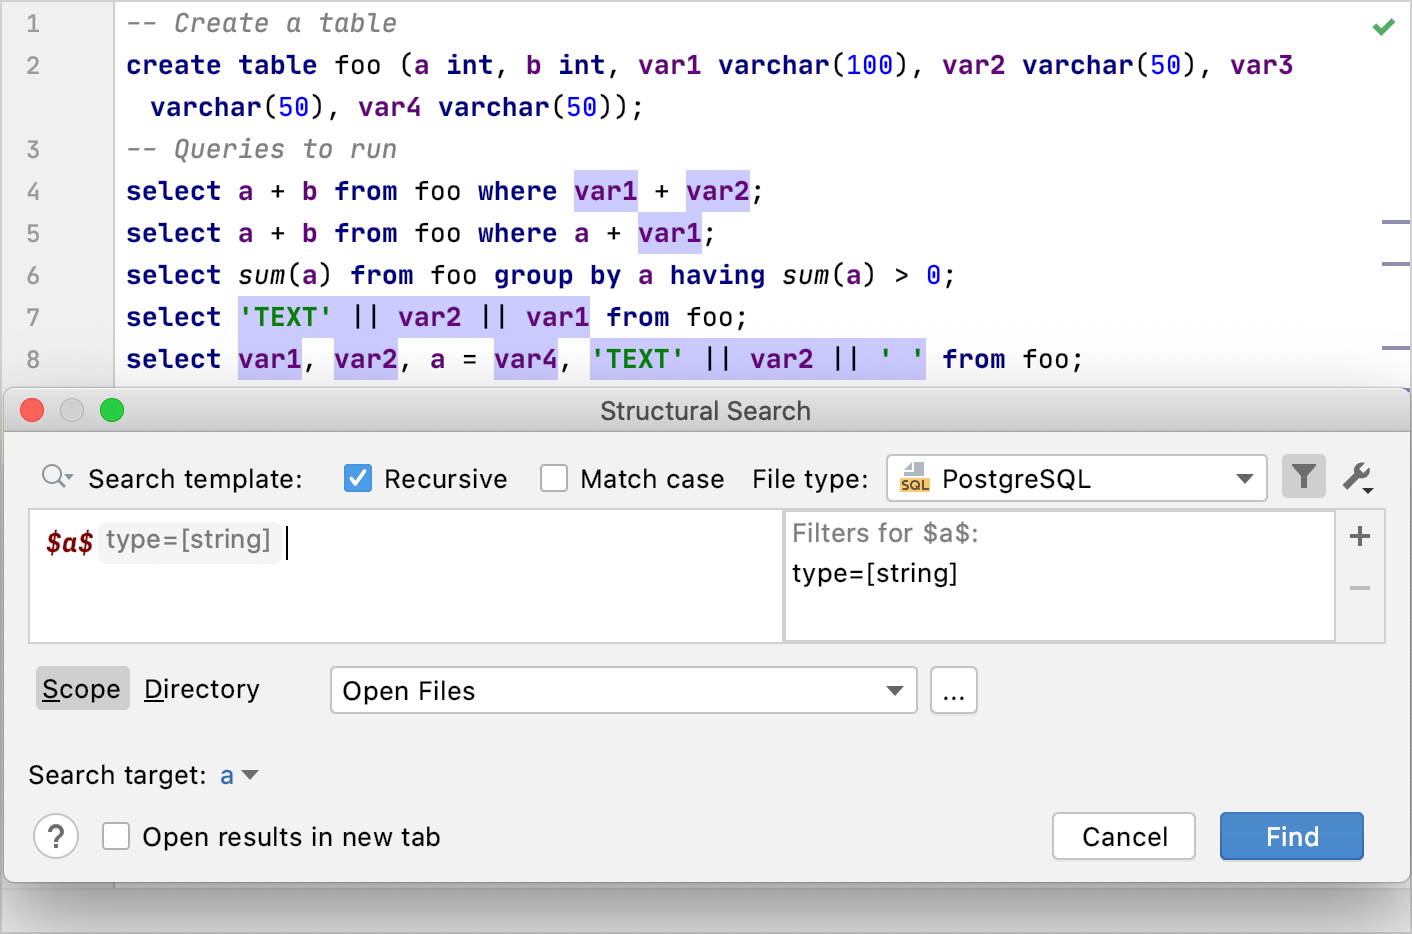 Structural Search with filters